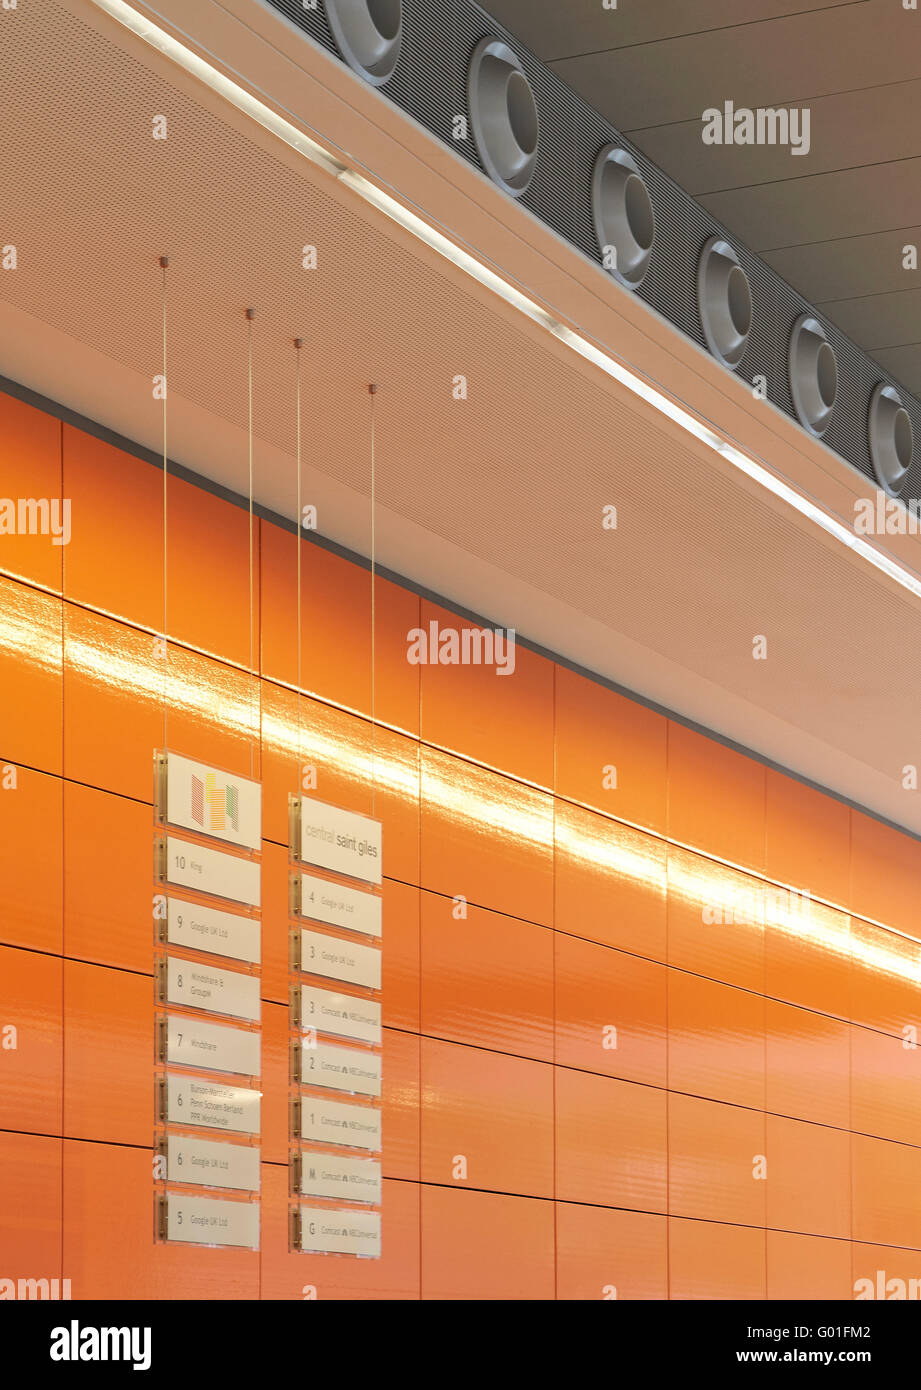 Detail of iconic orange colored ceramic tiles central saint giles detail of iconic orange colored ceramic tiles central saint giles london united kingdom architect renzo piano building workshop 2015 dailygadgetfo Choice Image